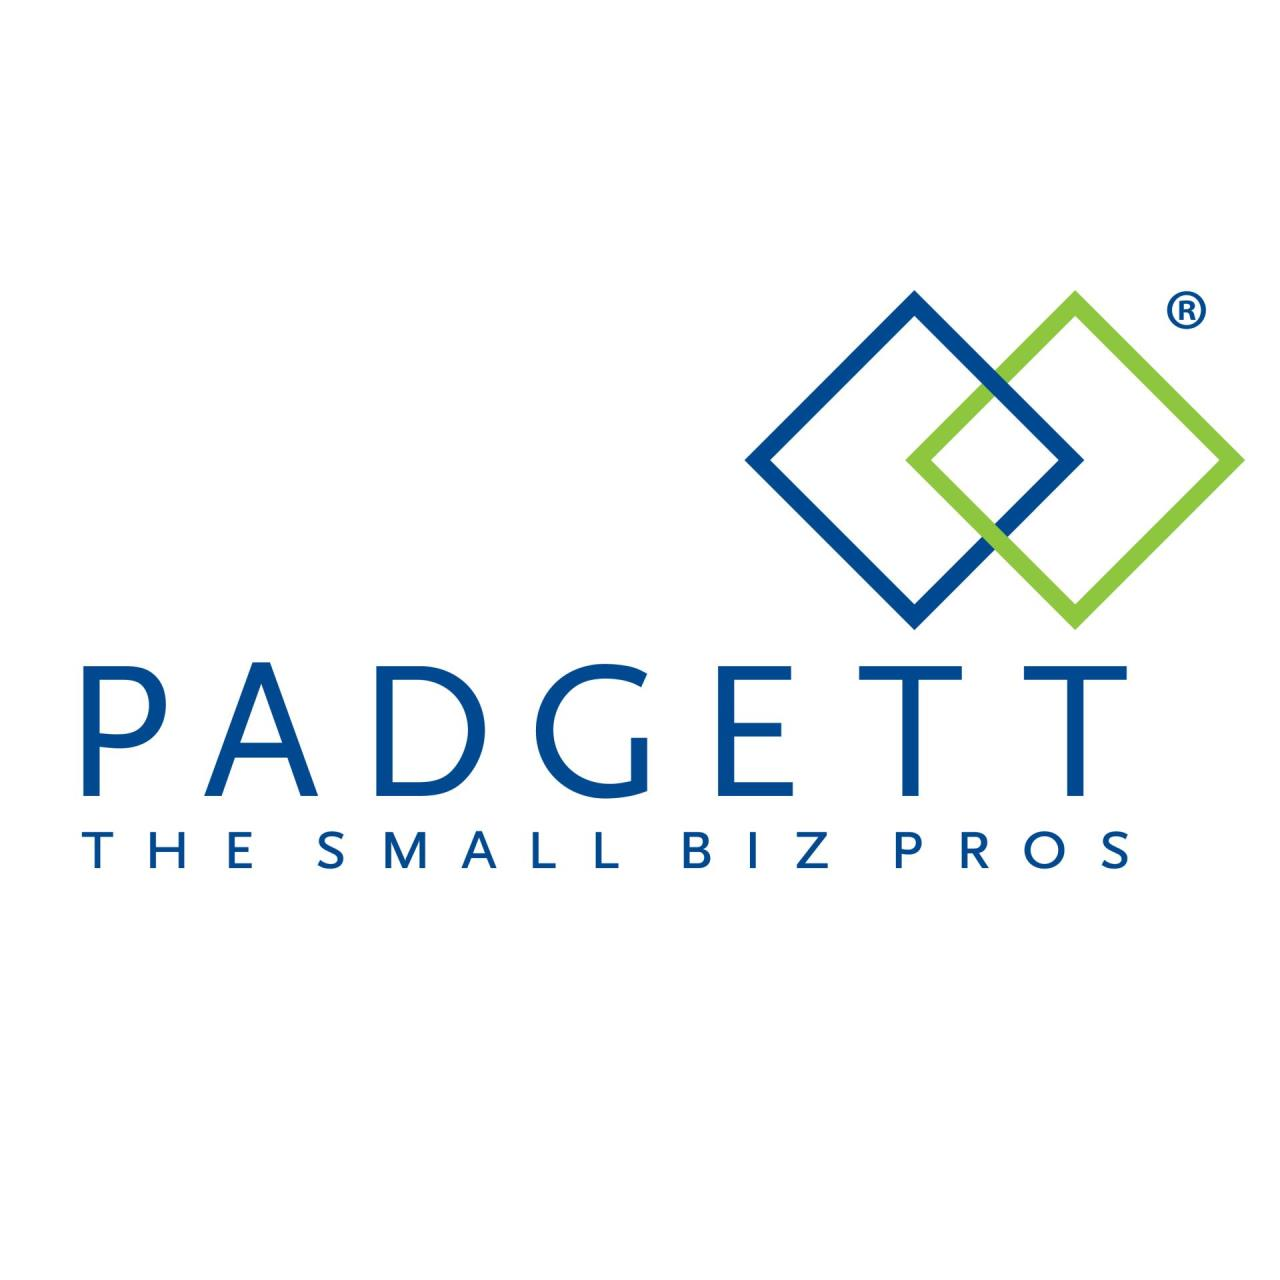 business logo that reads Padgett